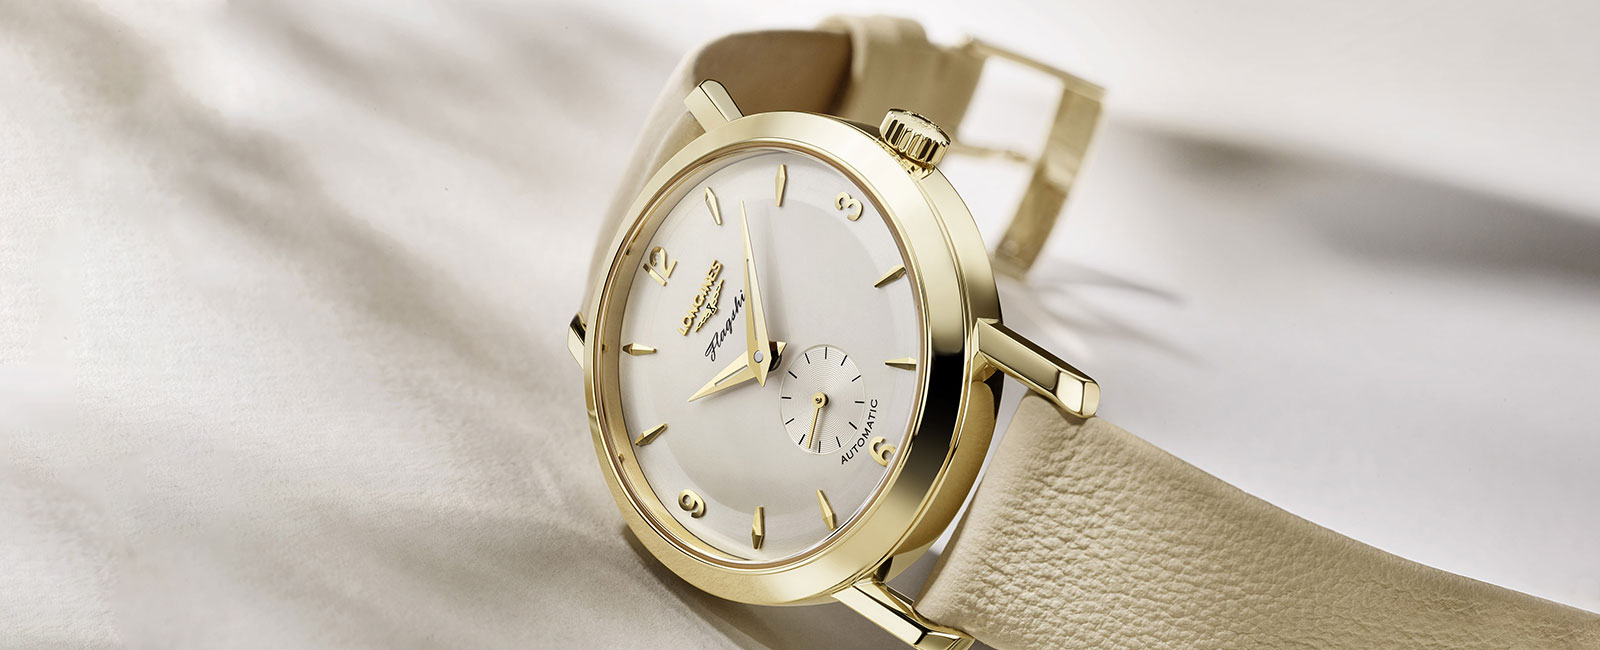 Kate Winslet auction; 3 watches sold; Golden hat foundation